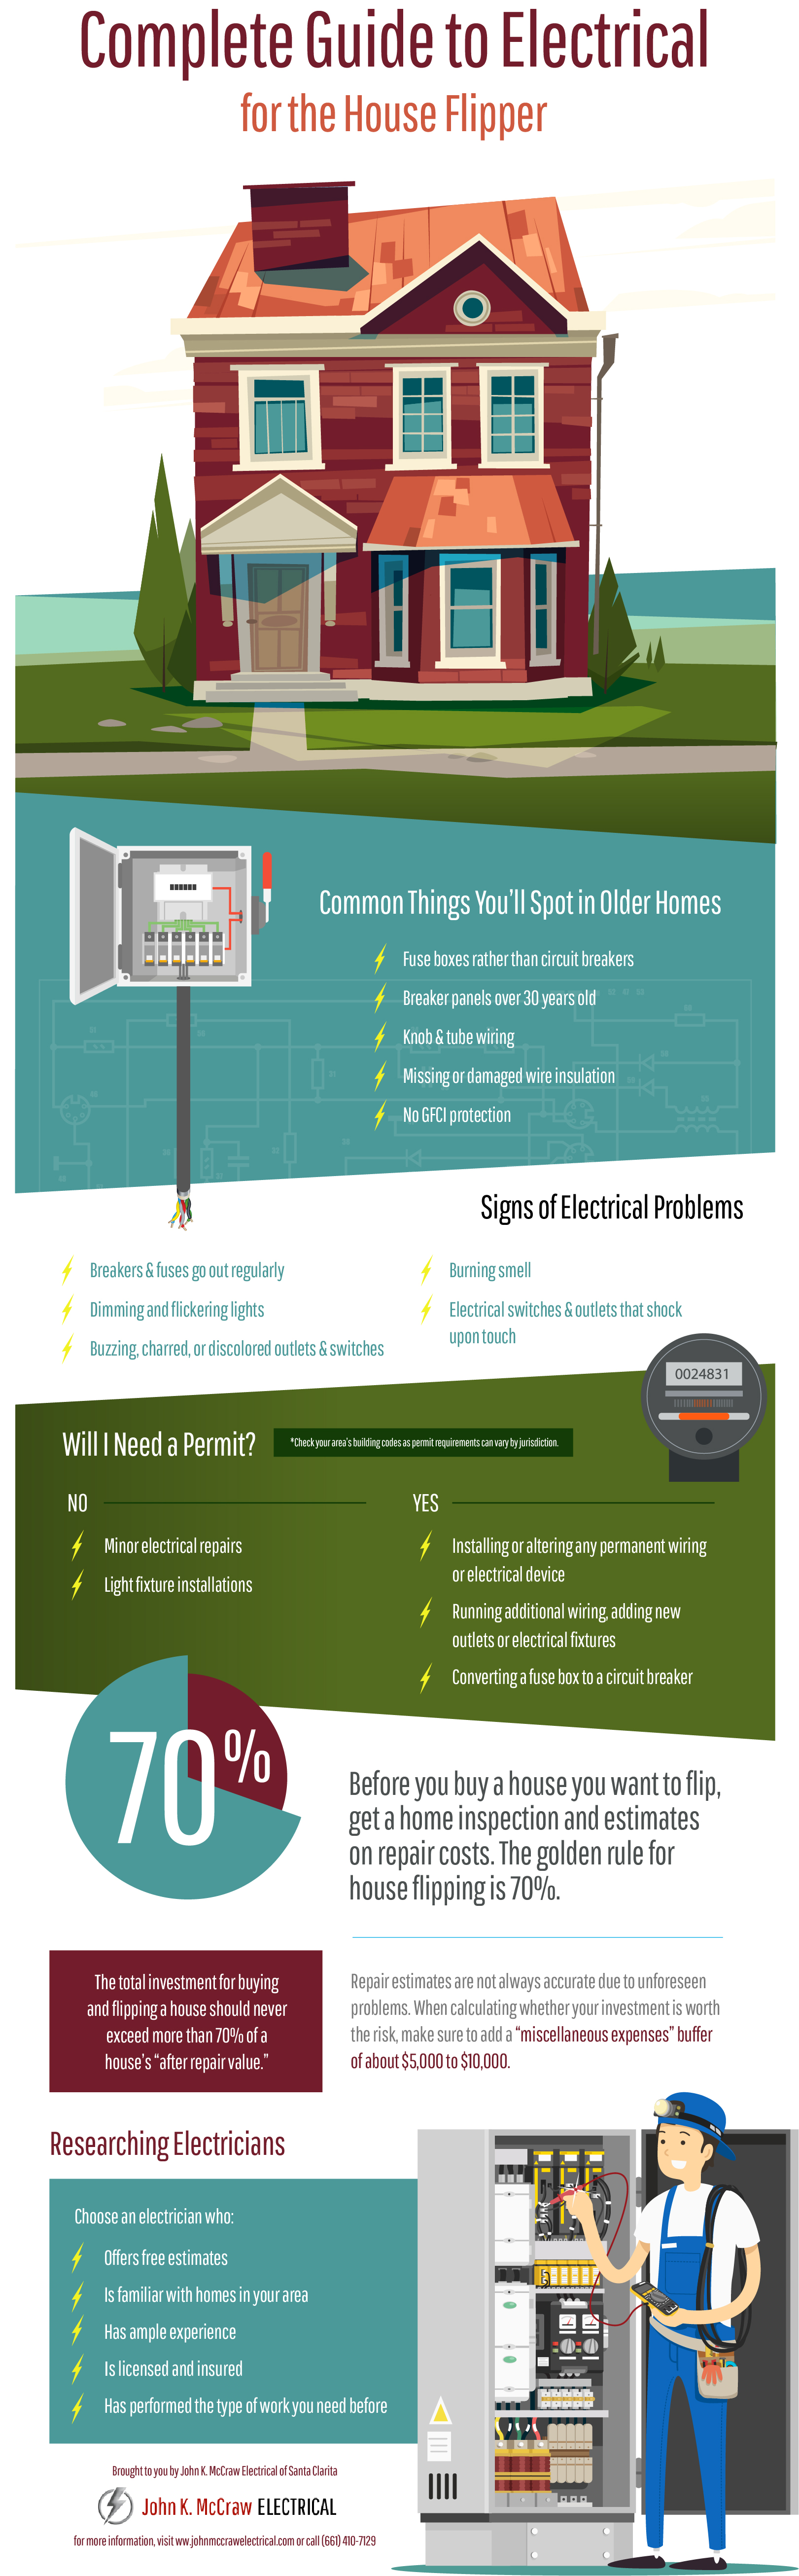 Complete Guide to Electrical for the House Flipper | House flippers ...